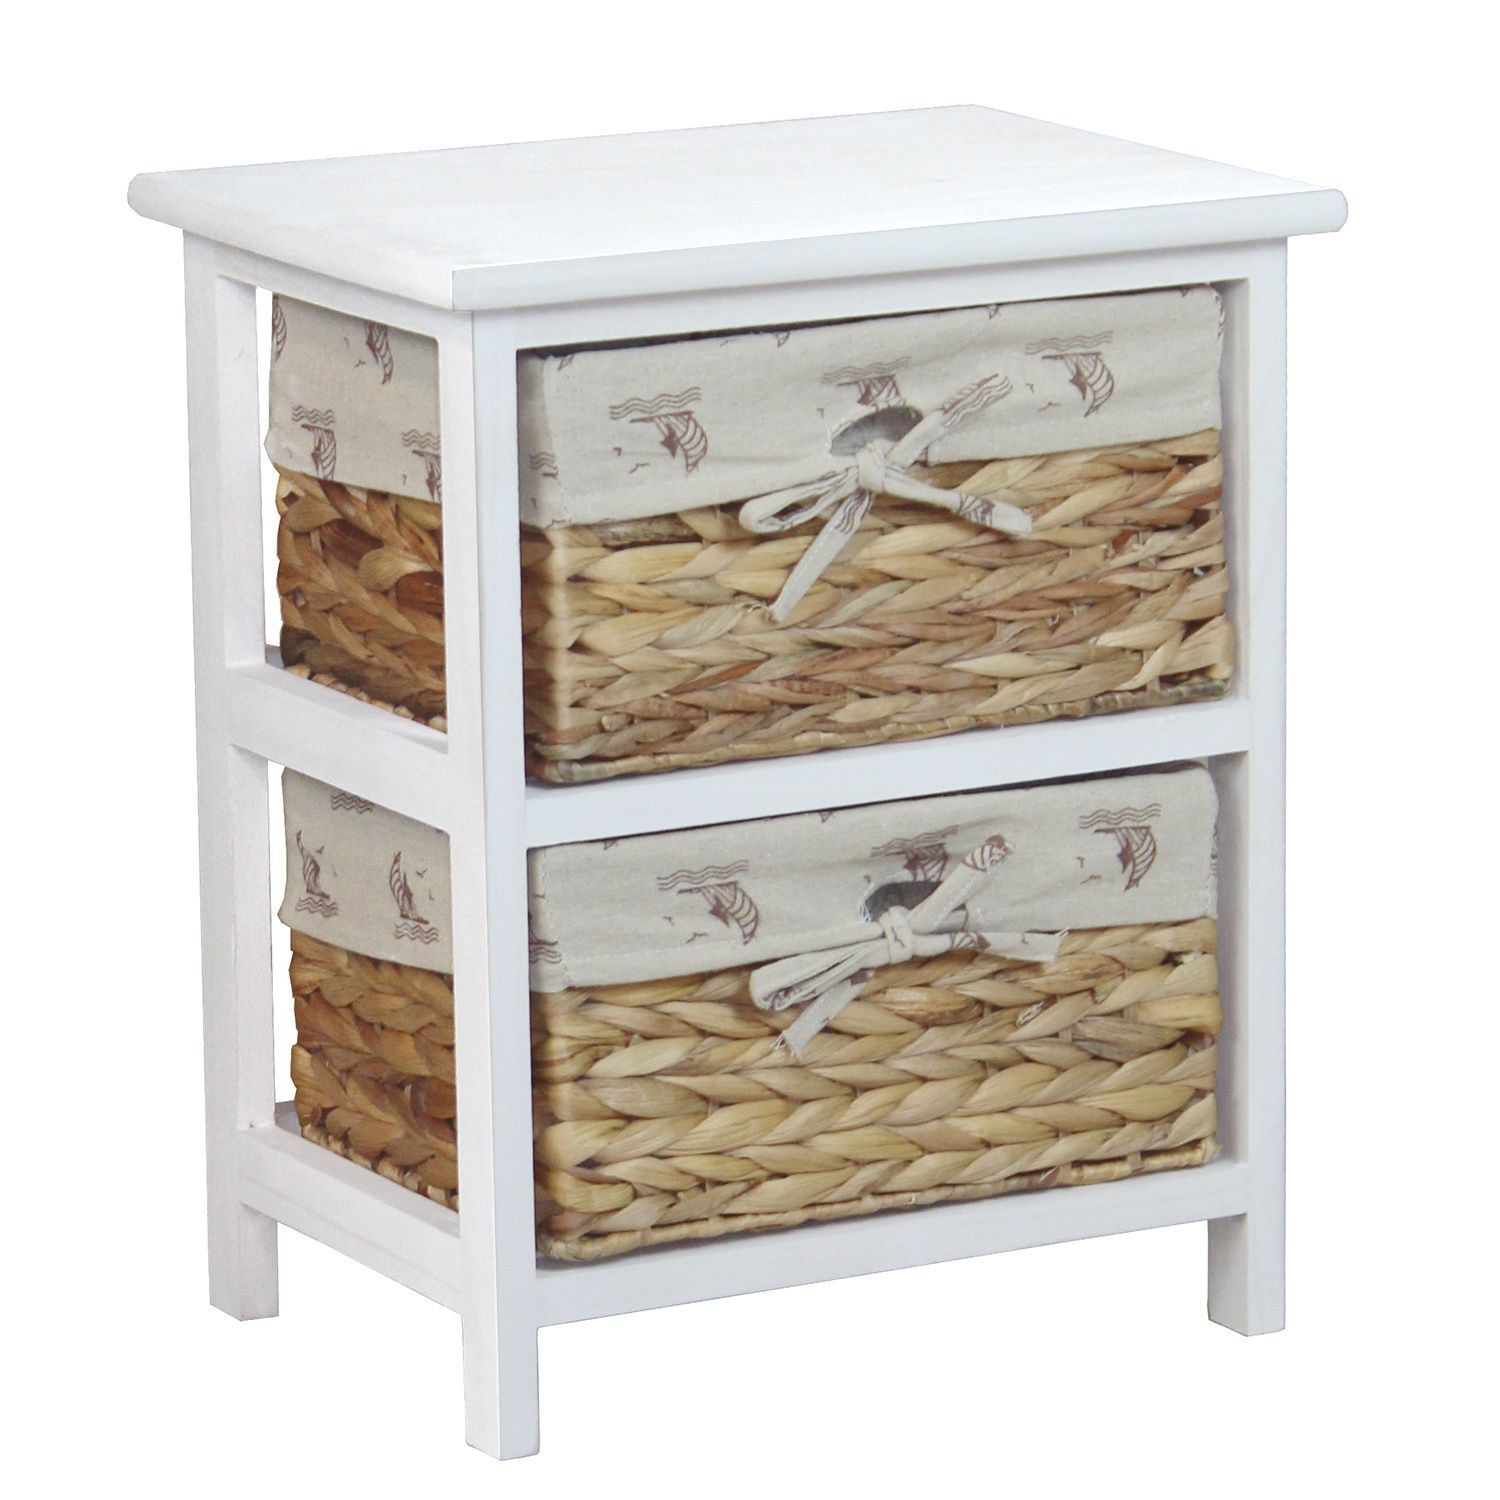 vintiquewise nightstand cabinet chest with basket drawers accent table drawer plant pedestal wooden threshold plates tall narrow hallway target acrylic ikea wood side thin sofa